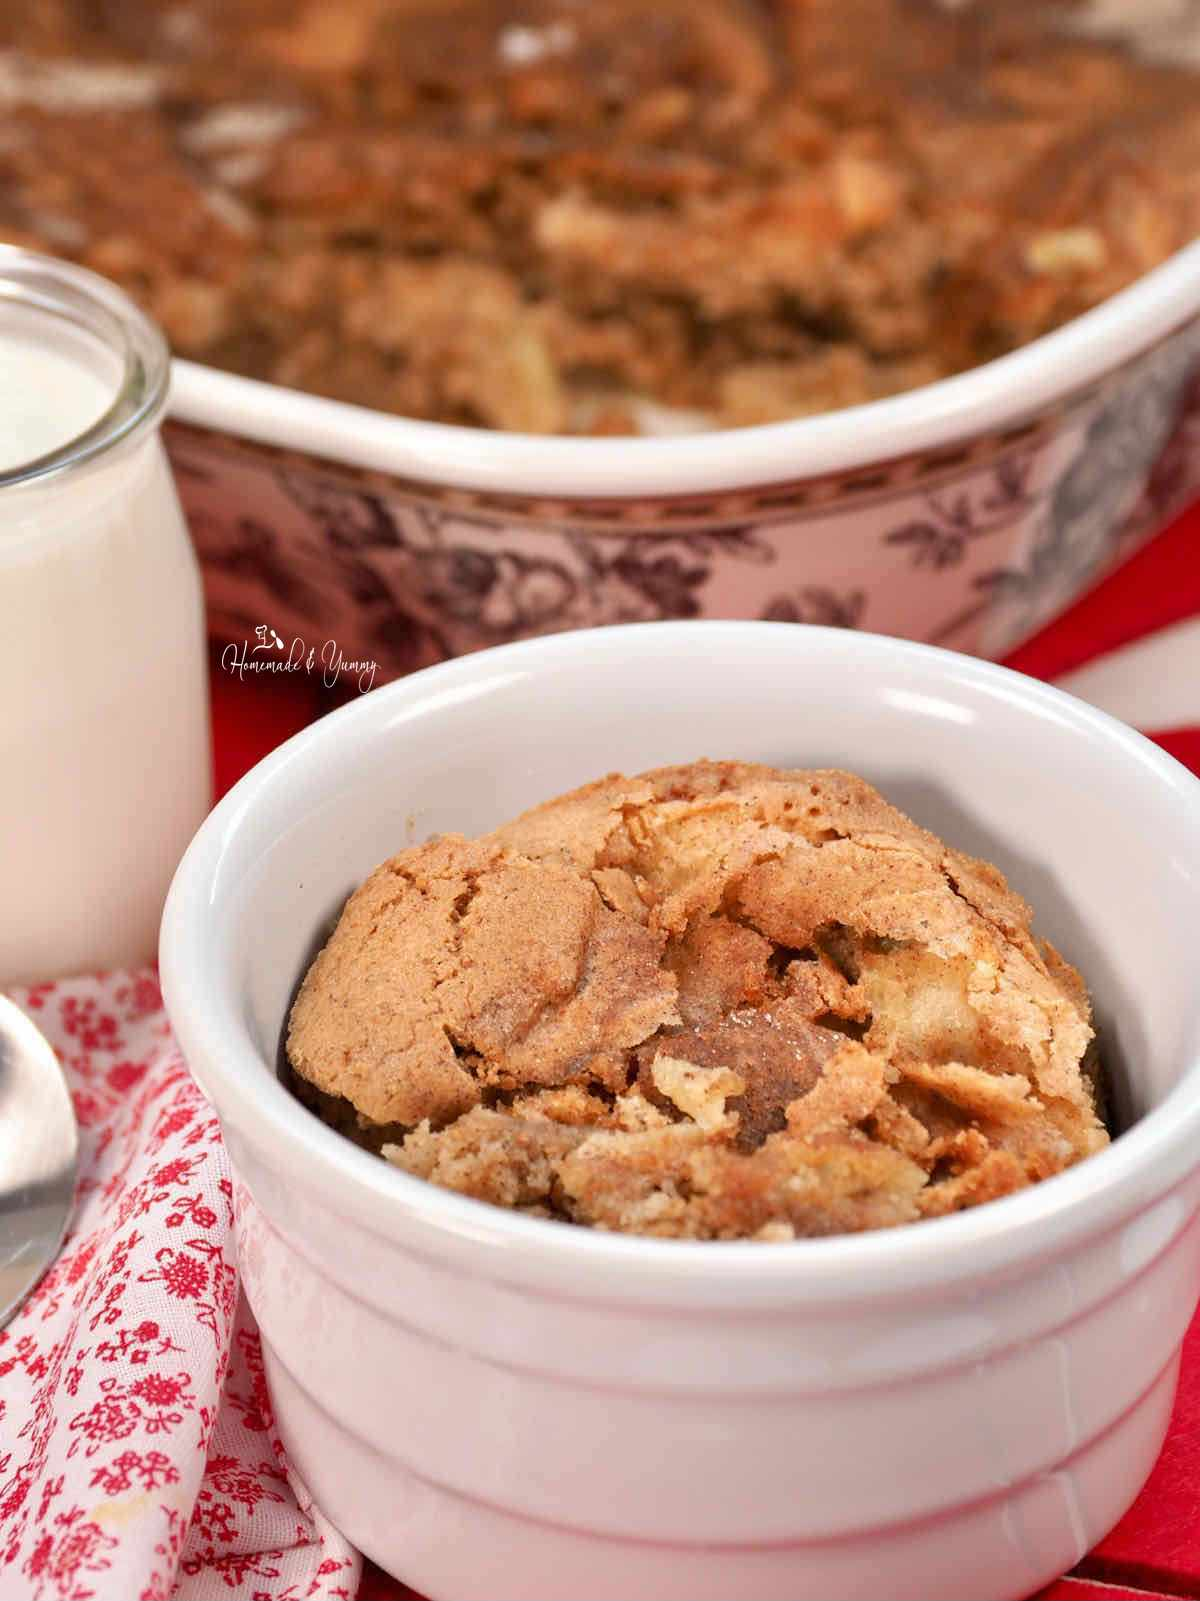 A bowl of warm apple pudding.